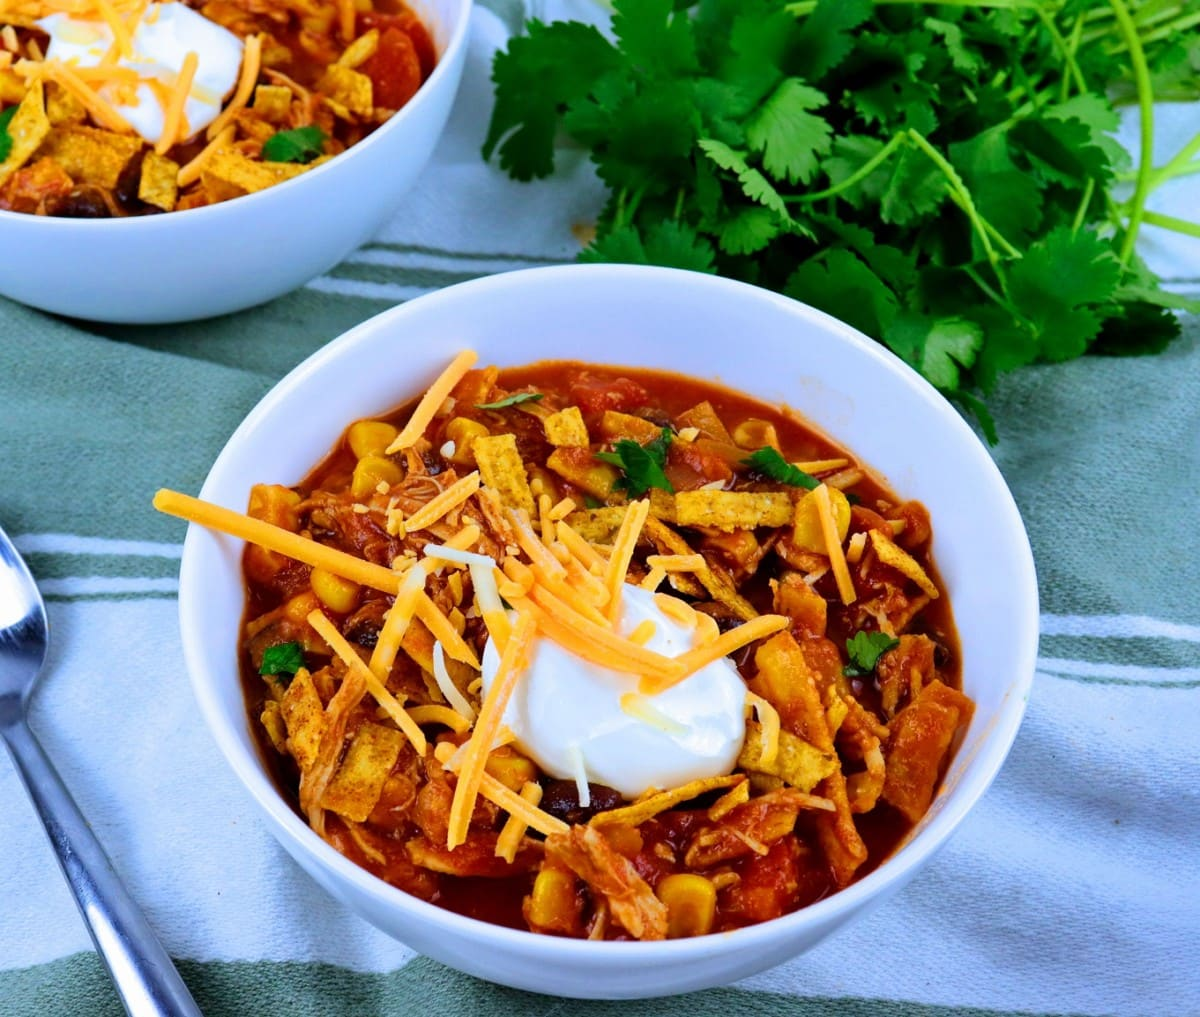 soup topped with sour cream and shredded cheese